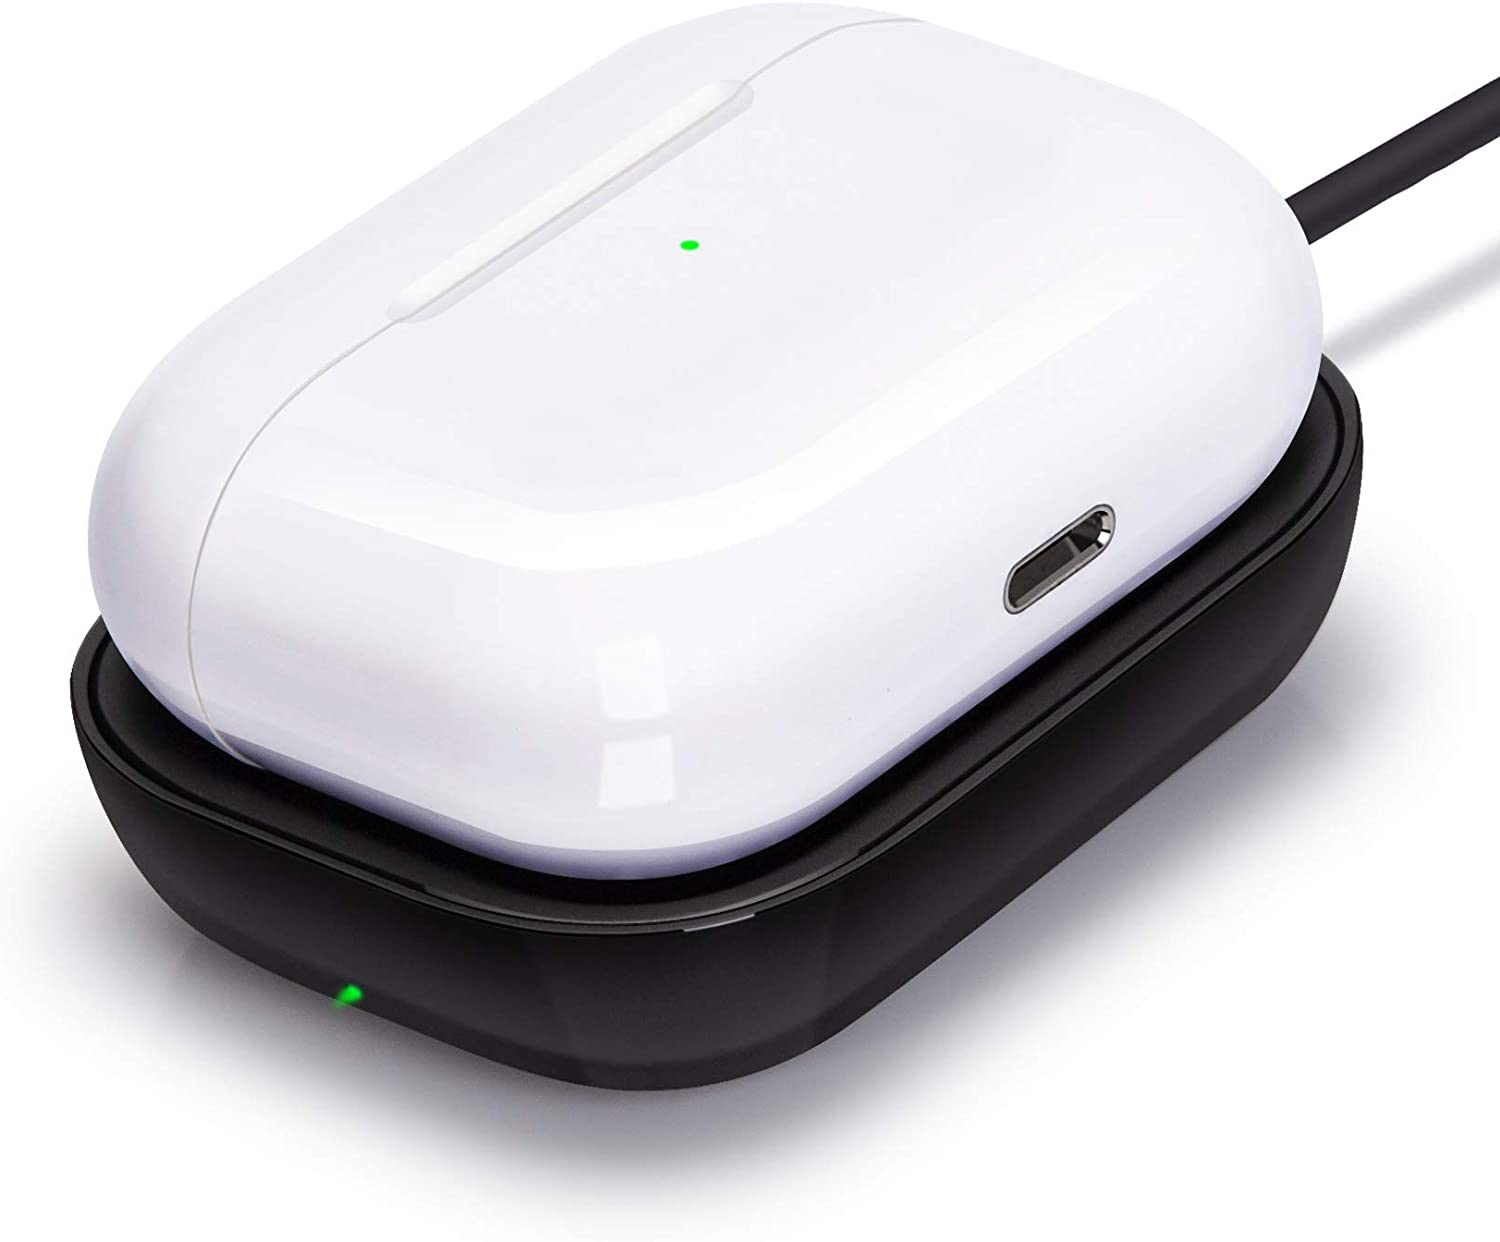 Airpods Pro Charger, Wireless Charger for Airpods/Airpods Pro Case, Wireless Charging Station for Apple Airpods Earbuds Wireless Charger Pad for Airpods Pro Earpods Black